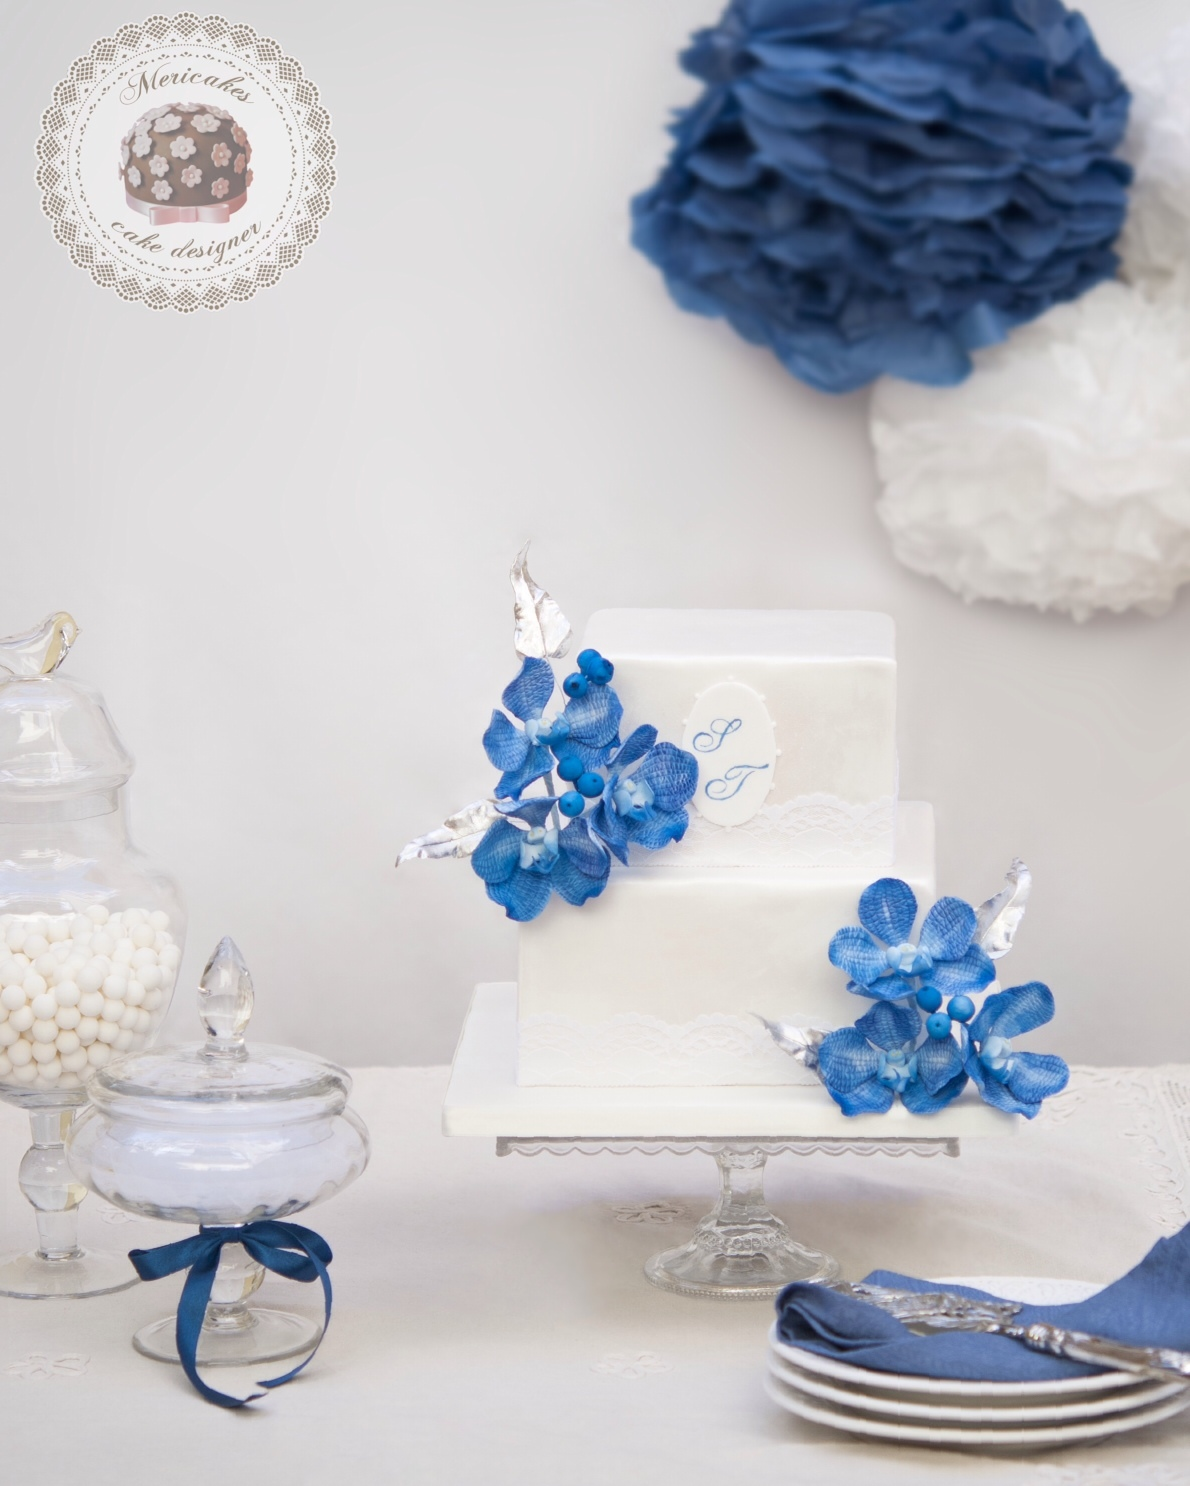 White fondant cake with blue sugar flowers